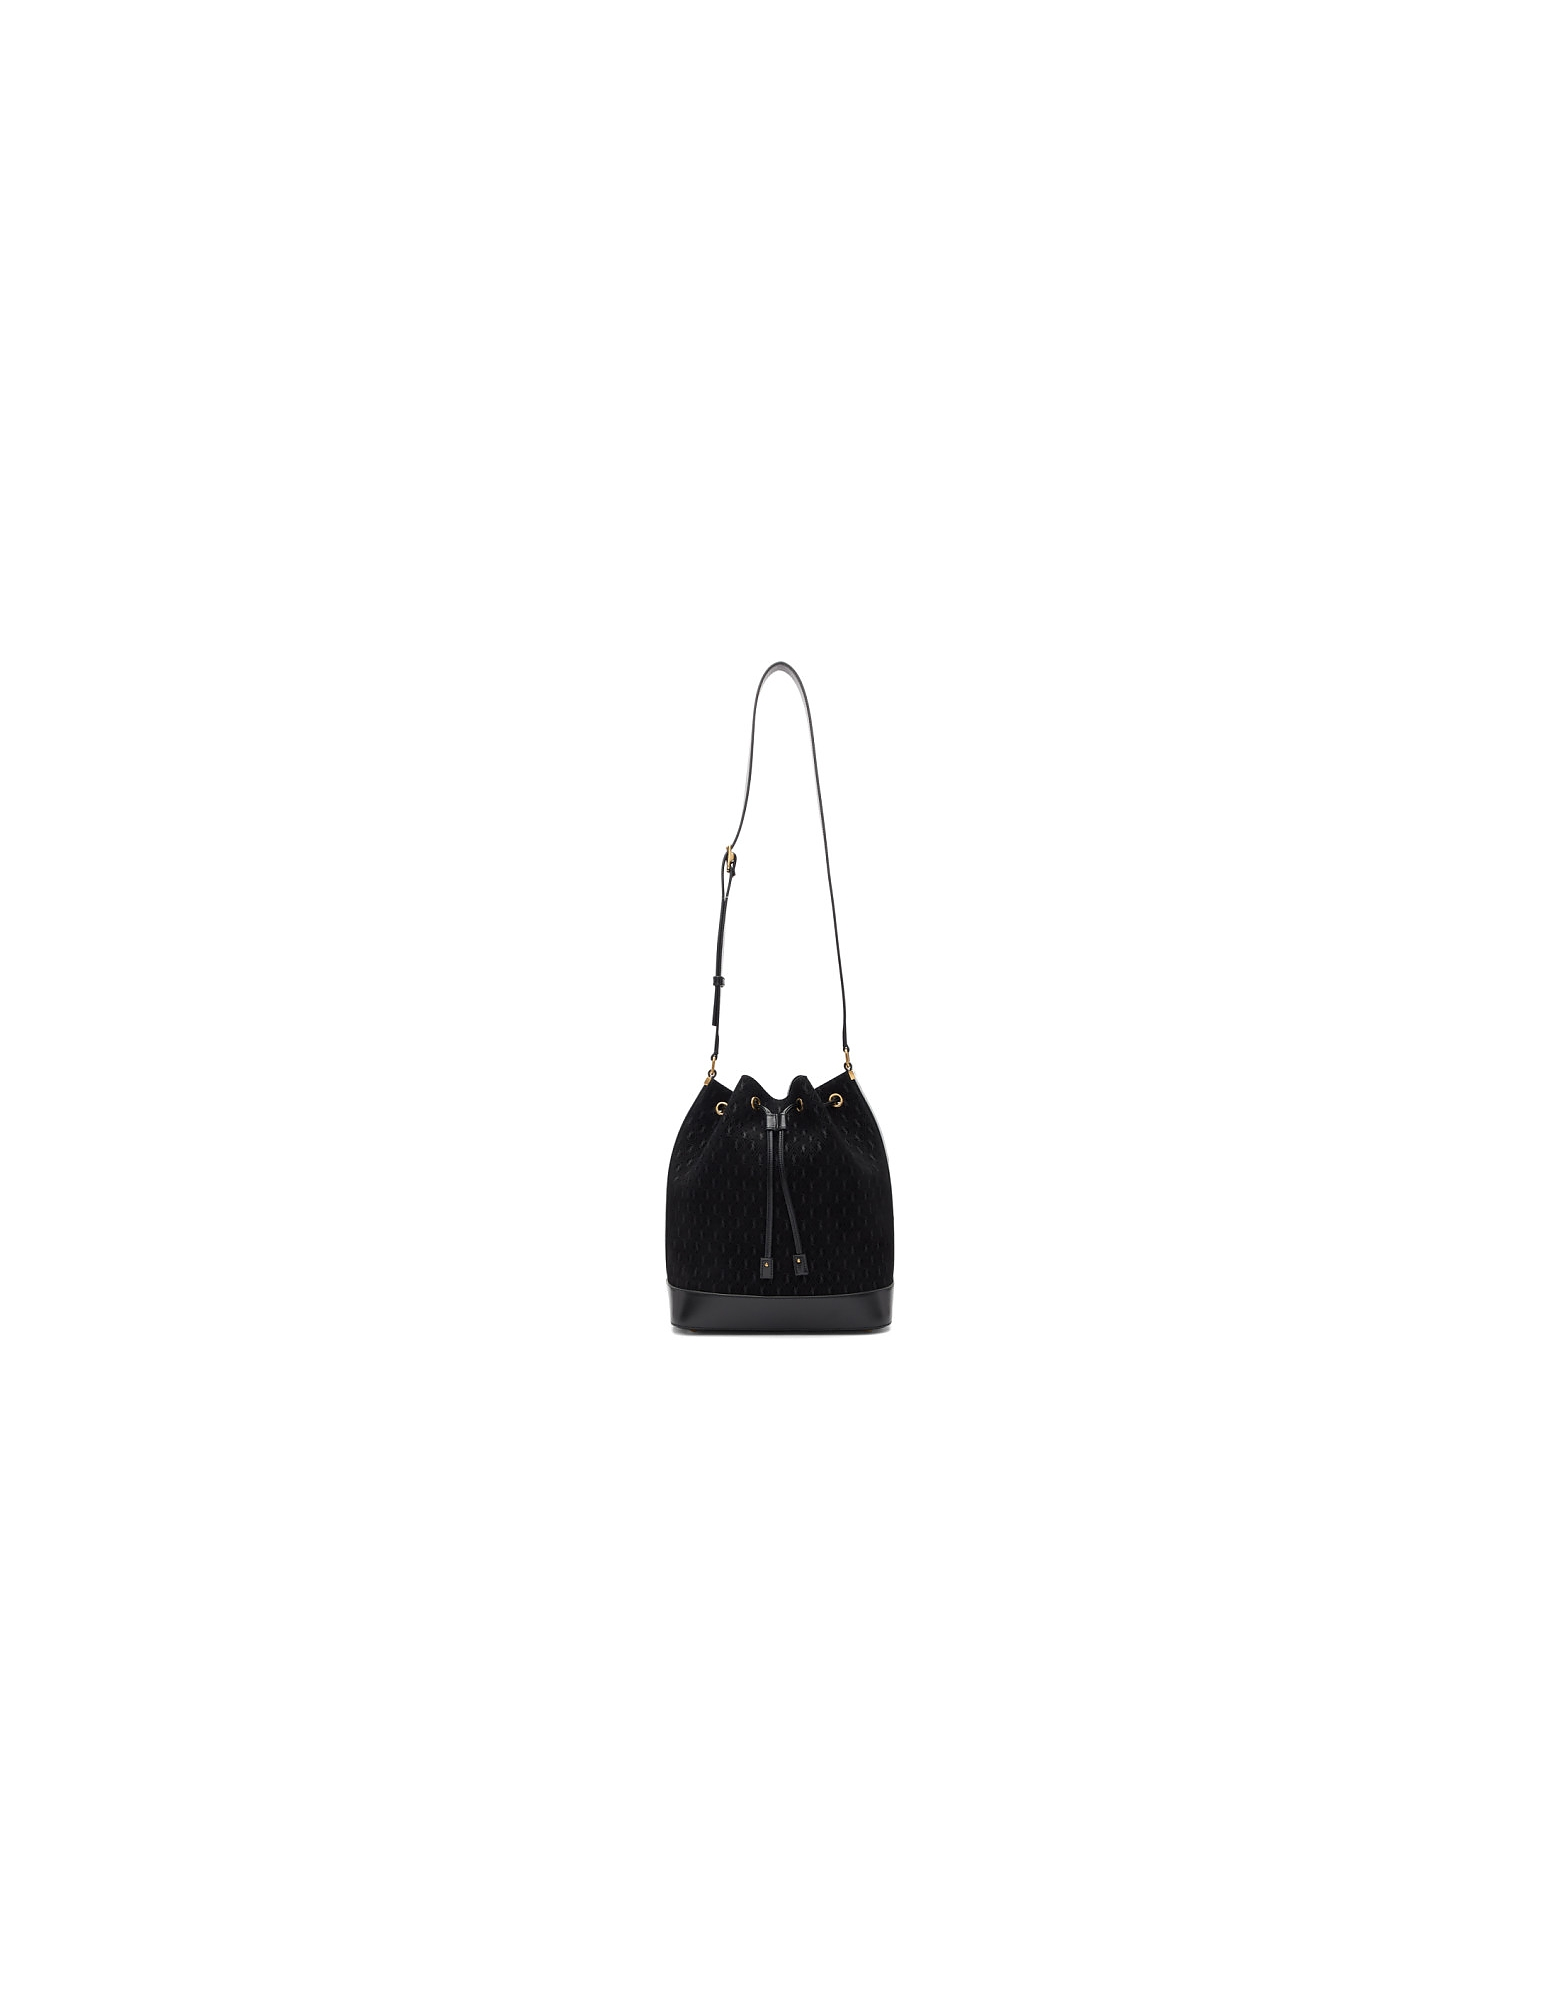 Saint Laurent Designer Handbags, Black All-Over Monogramme Philadelphia Bag